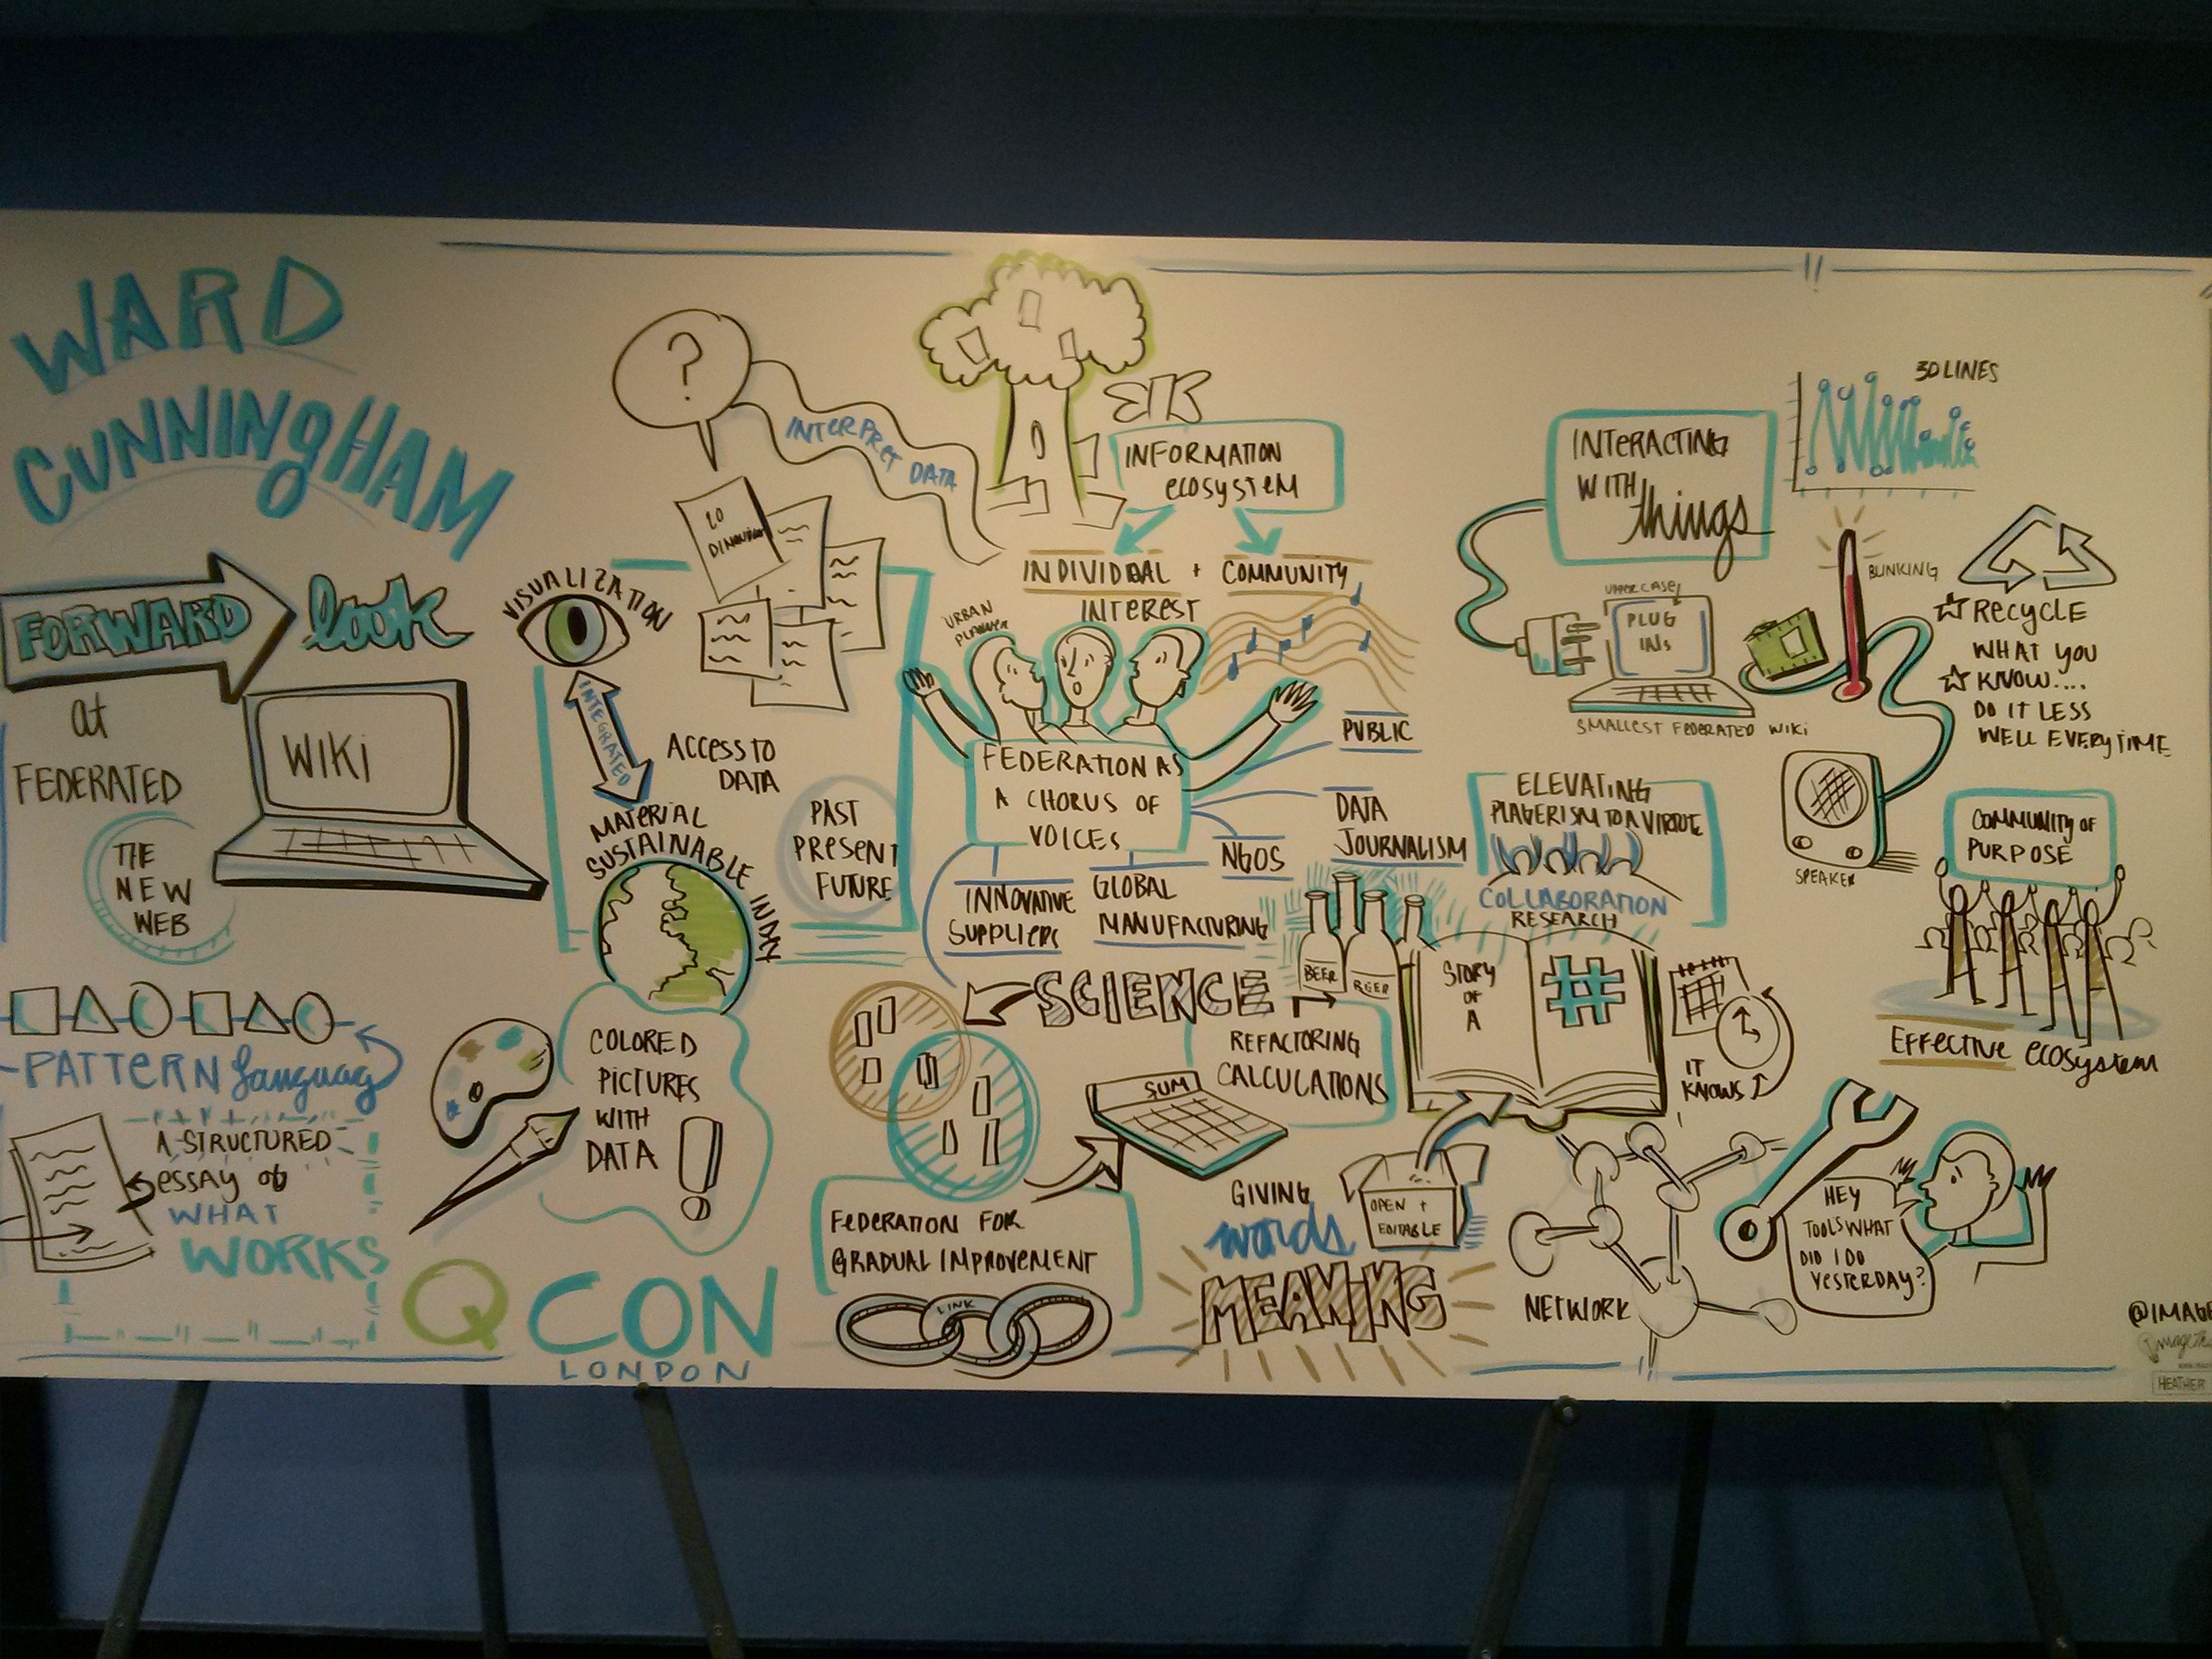 A visualisation drawn by Heather Willems of Ward Cunningham's talk on Federated Wiki at QCon London 2013